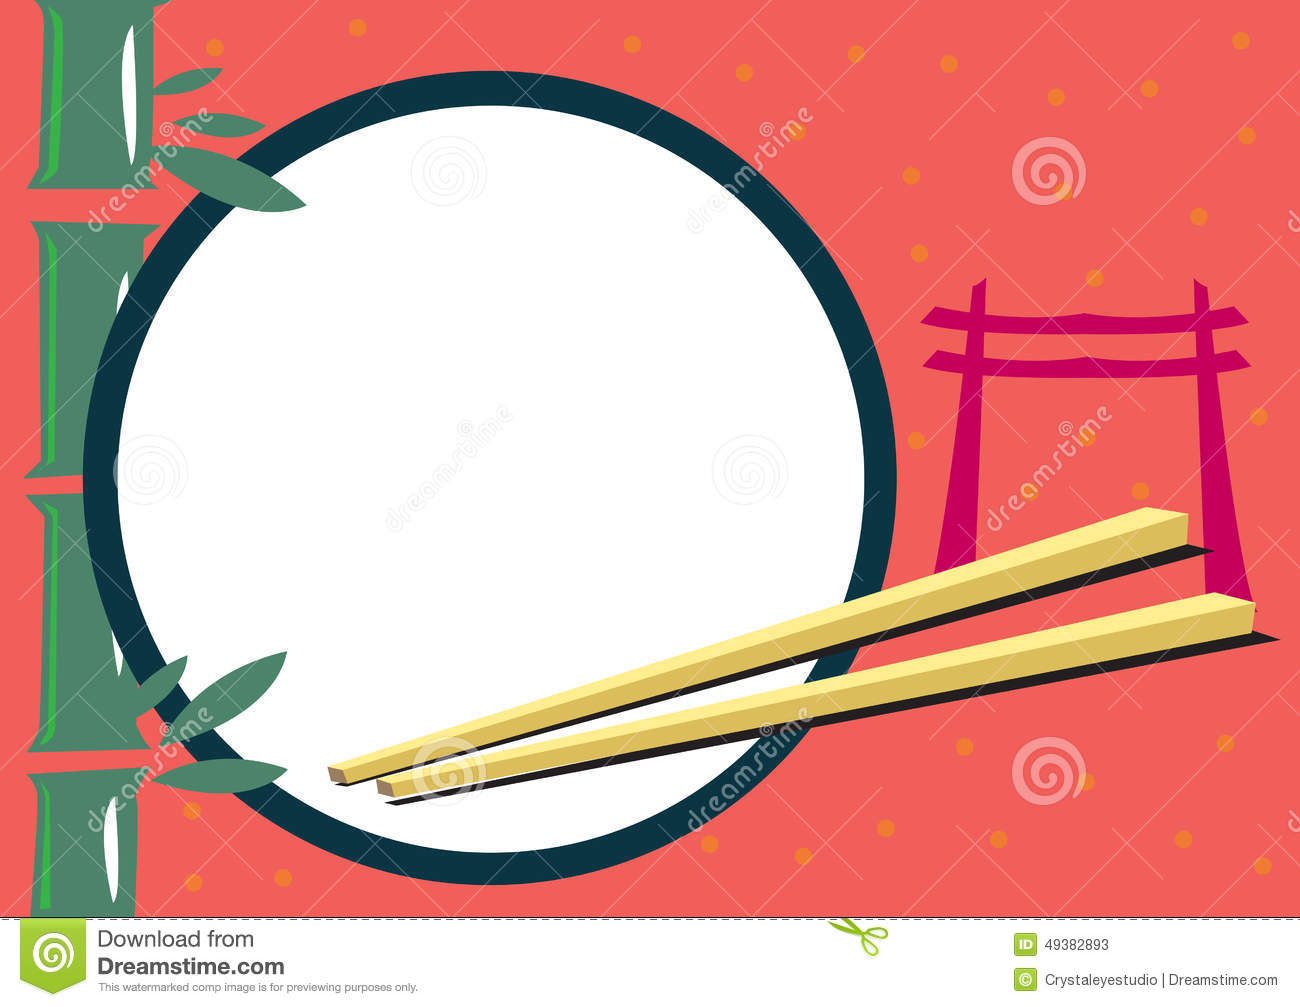 Japanese Themed Frame For Food And Travel Concepts Illustration ...